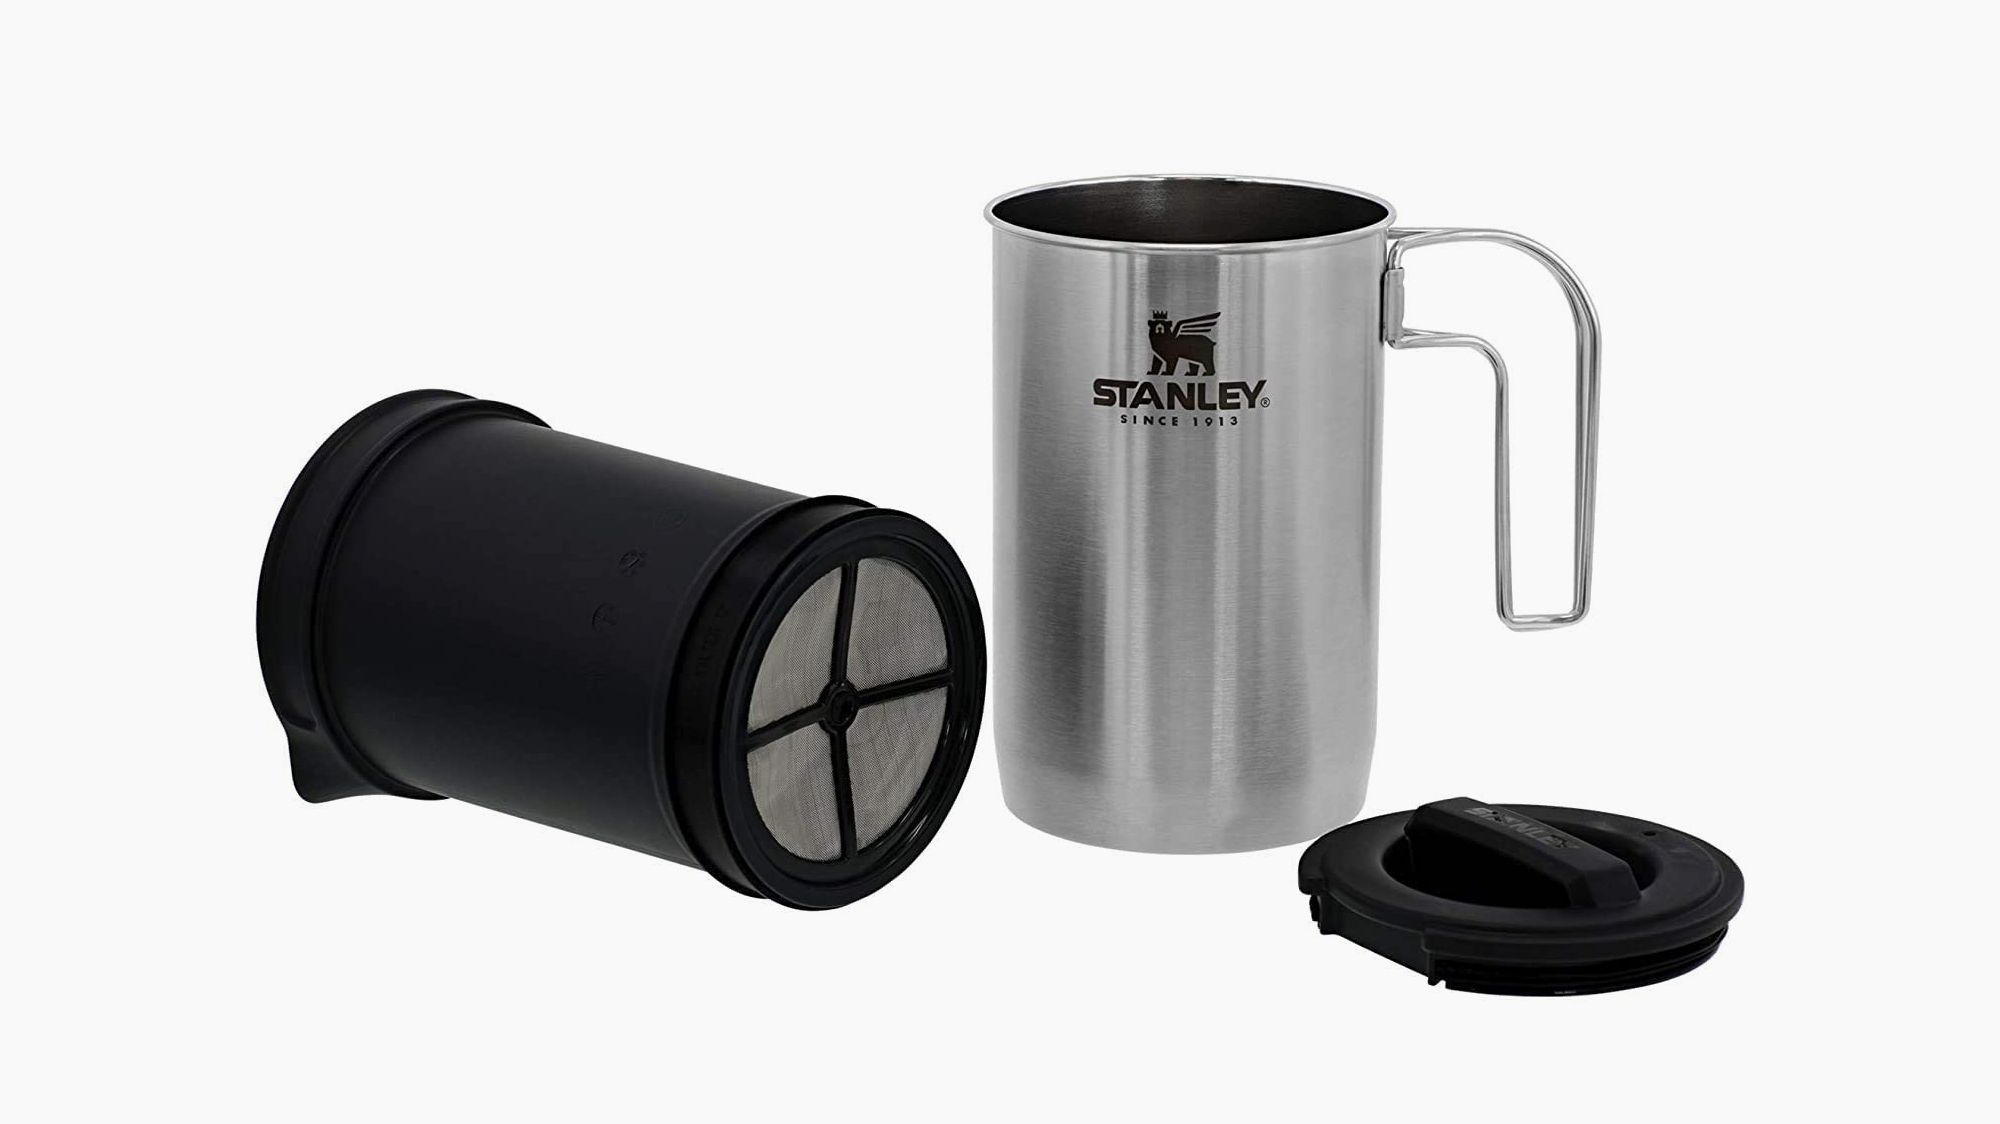 Brew Great Coffee on Your Next Camping Trip With This Stainless-Steel French Press